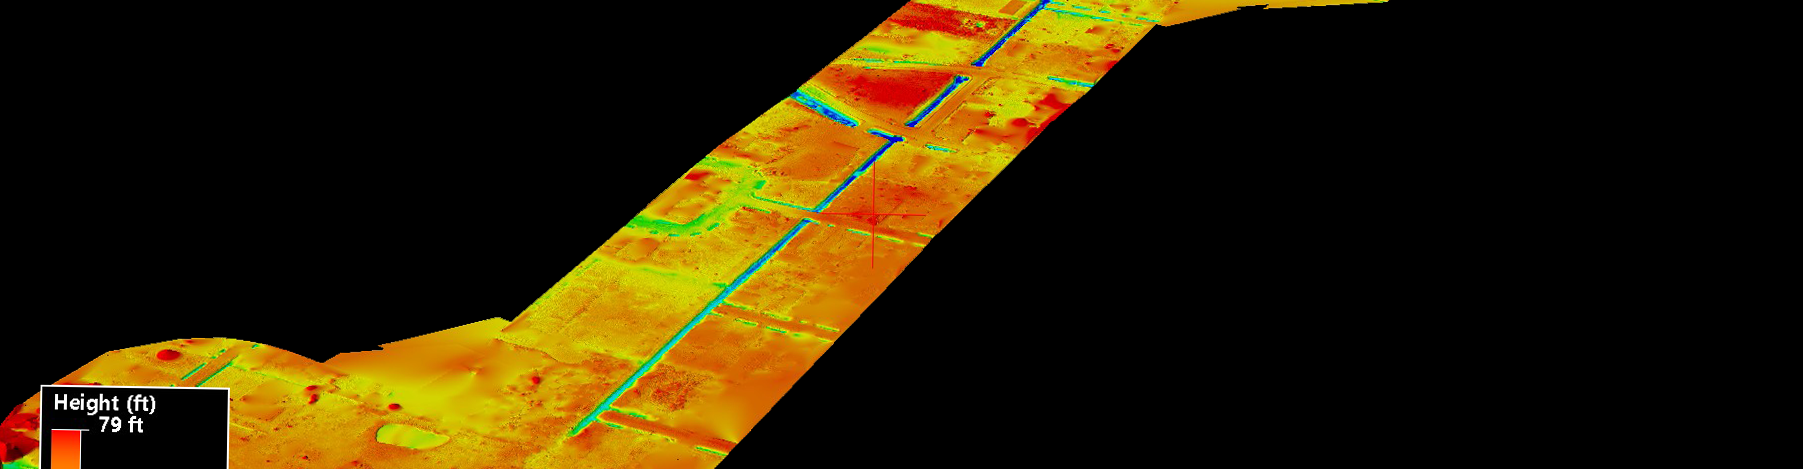 Drone LiDAR DTM Urban Ditch